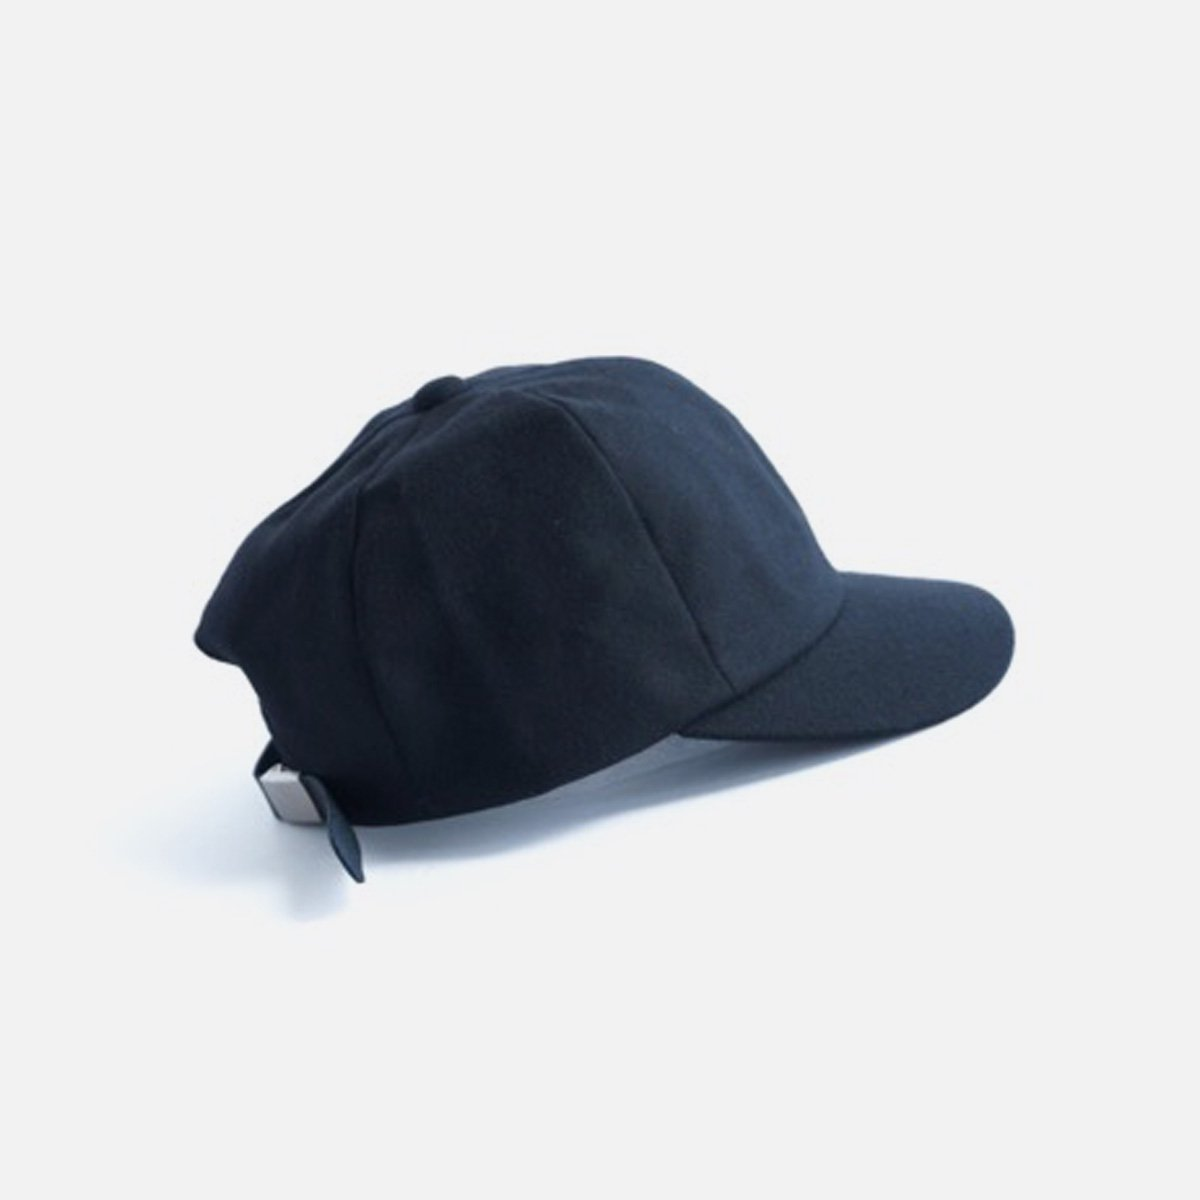 FIRMUM PLAIN WOOL CAP (BLACK)